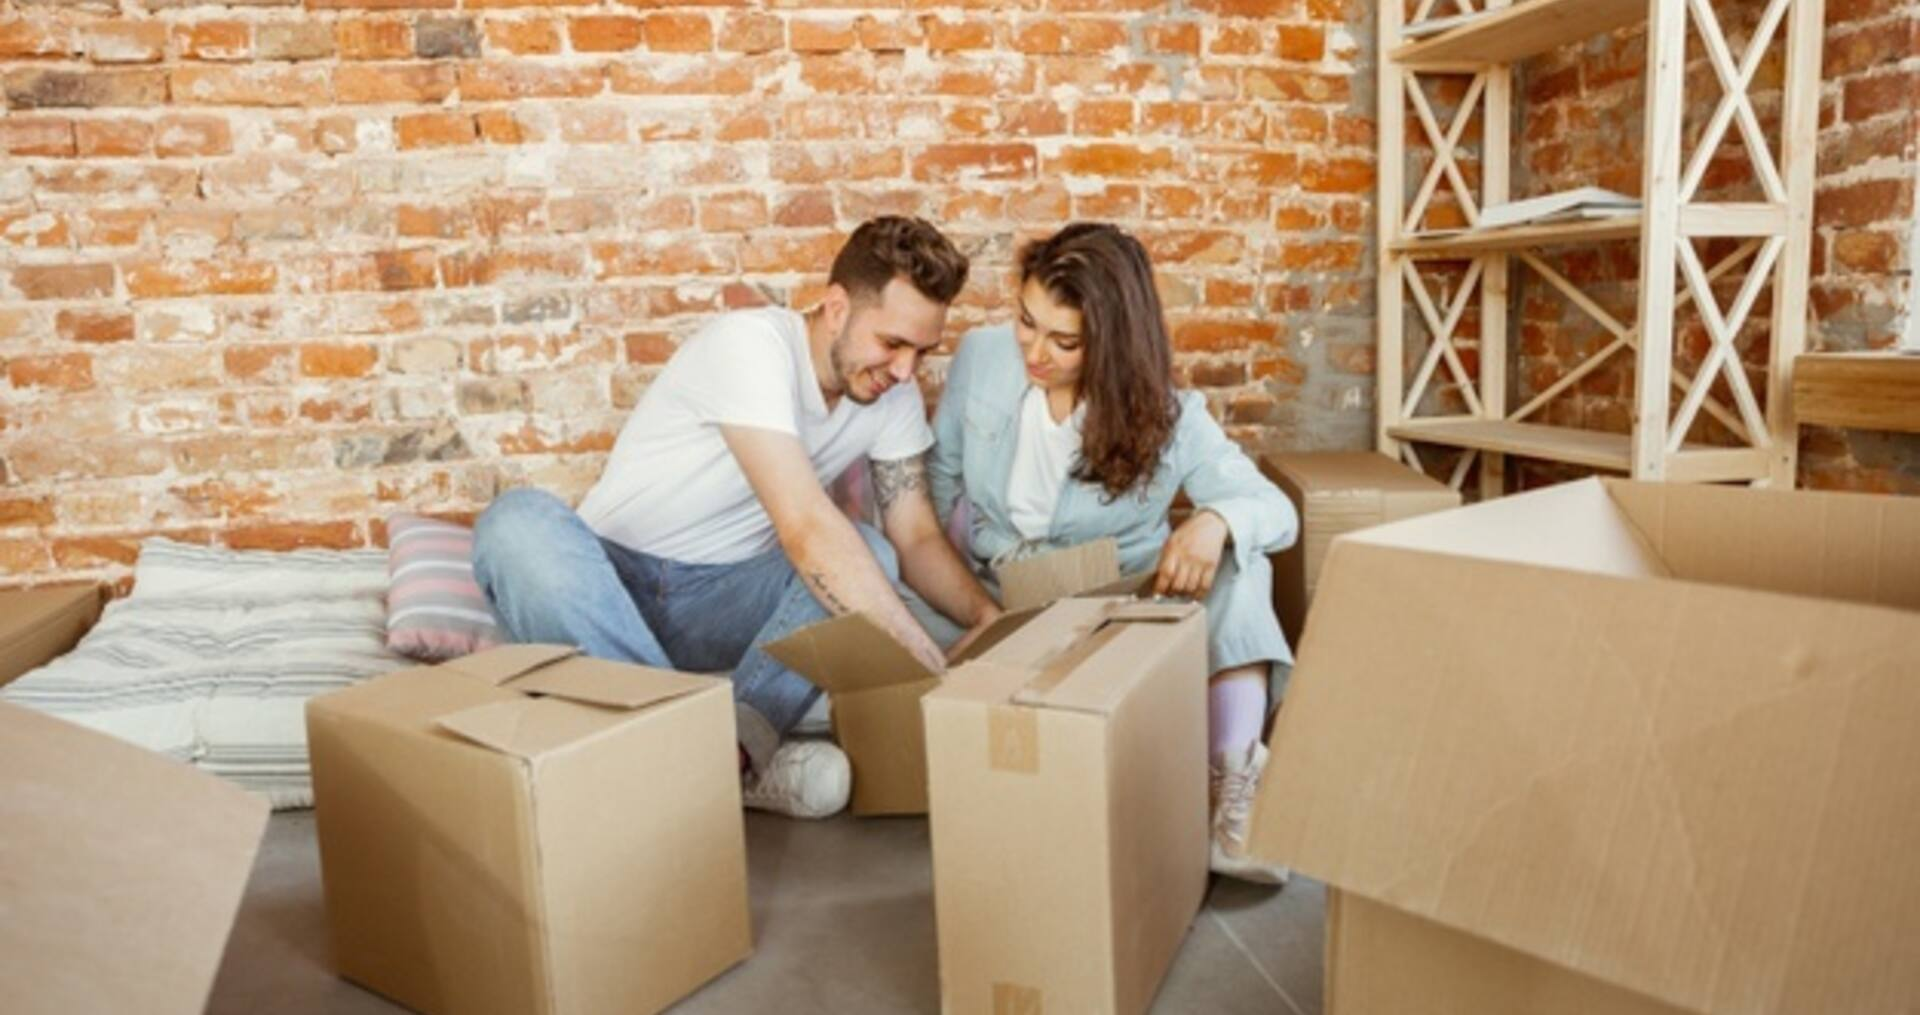 Top 5 tips to buying your first home